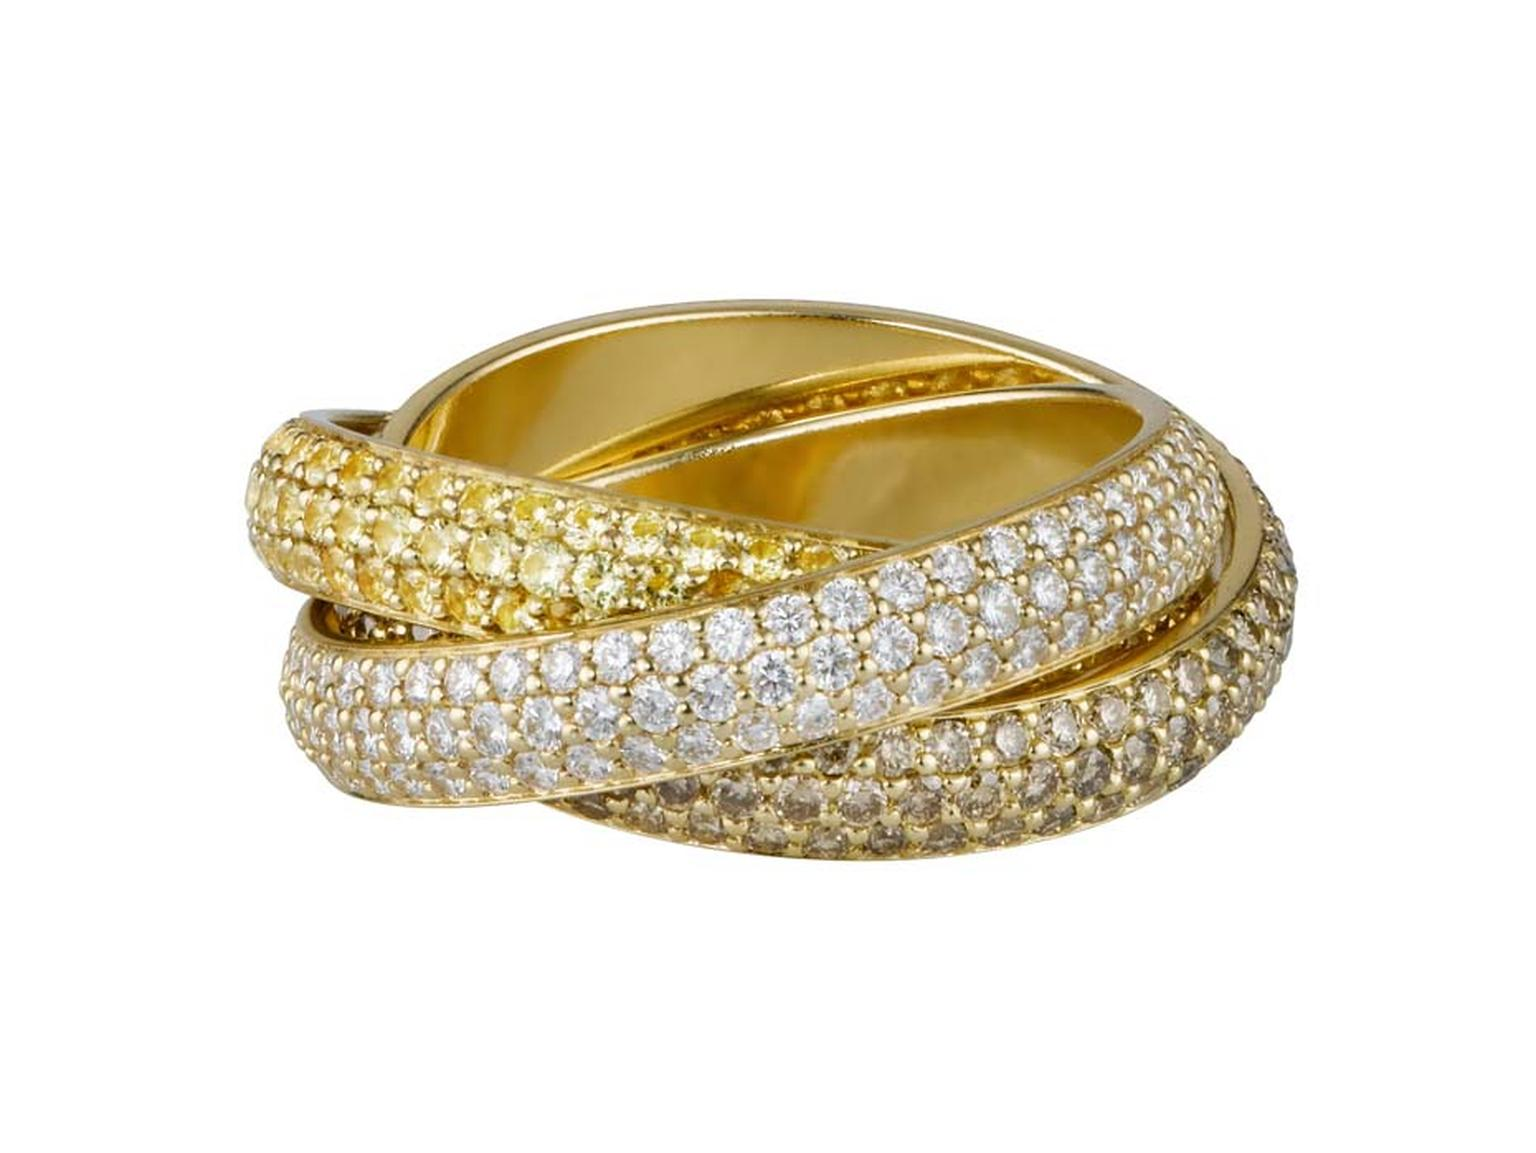 Cartier Trinity ring in rose, yellow and white gold all swathed in diamonds.